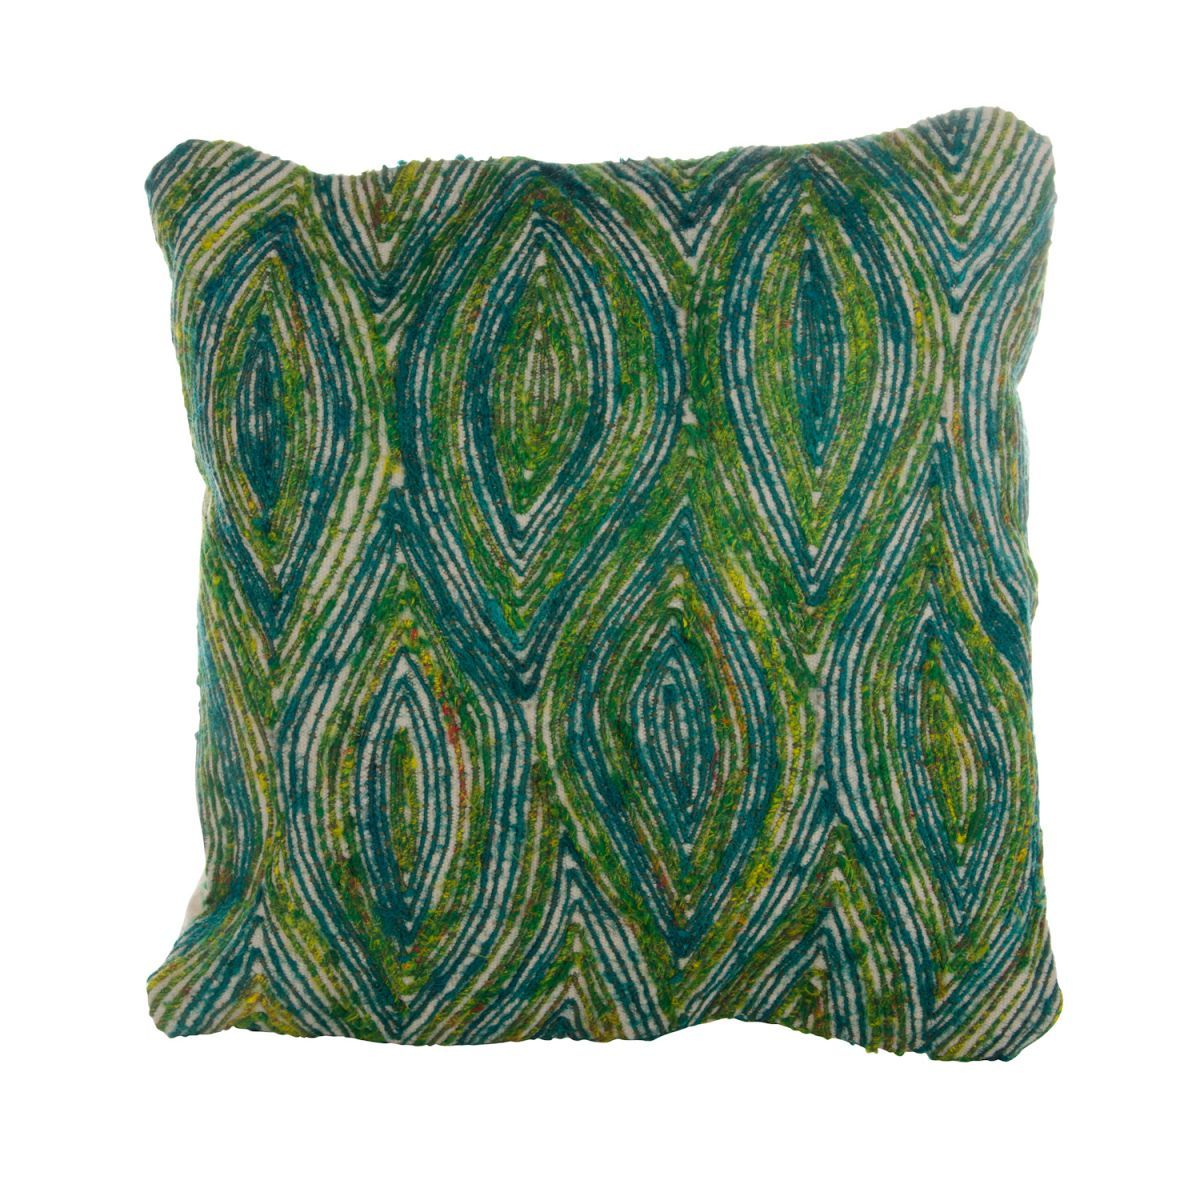 cushion peacock wh 50x50cm incl of filler